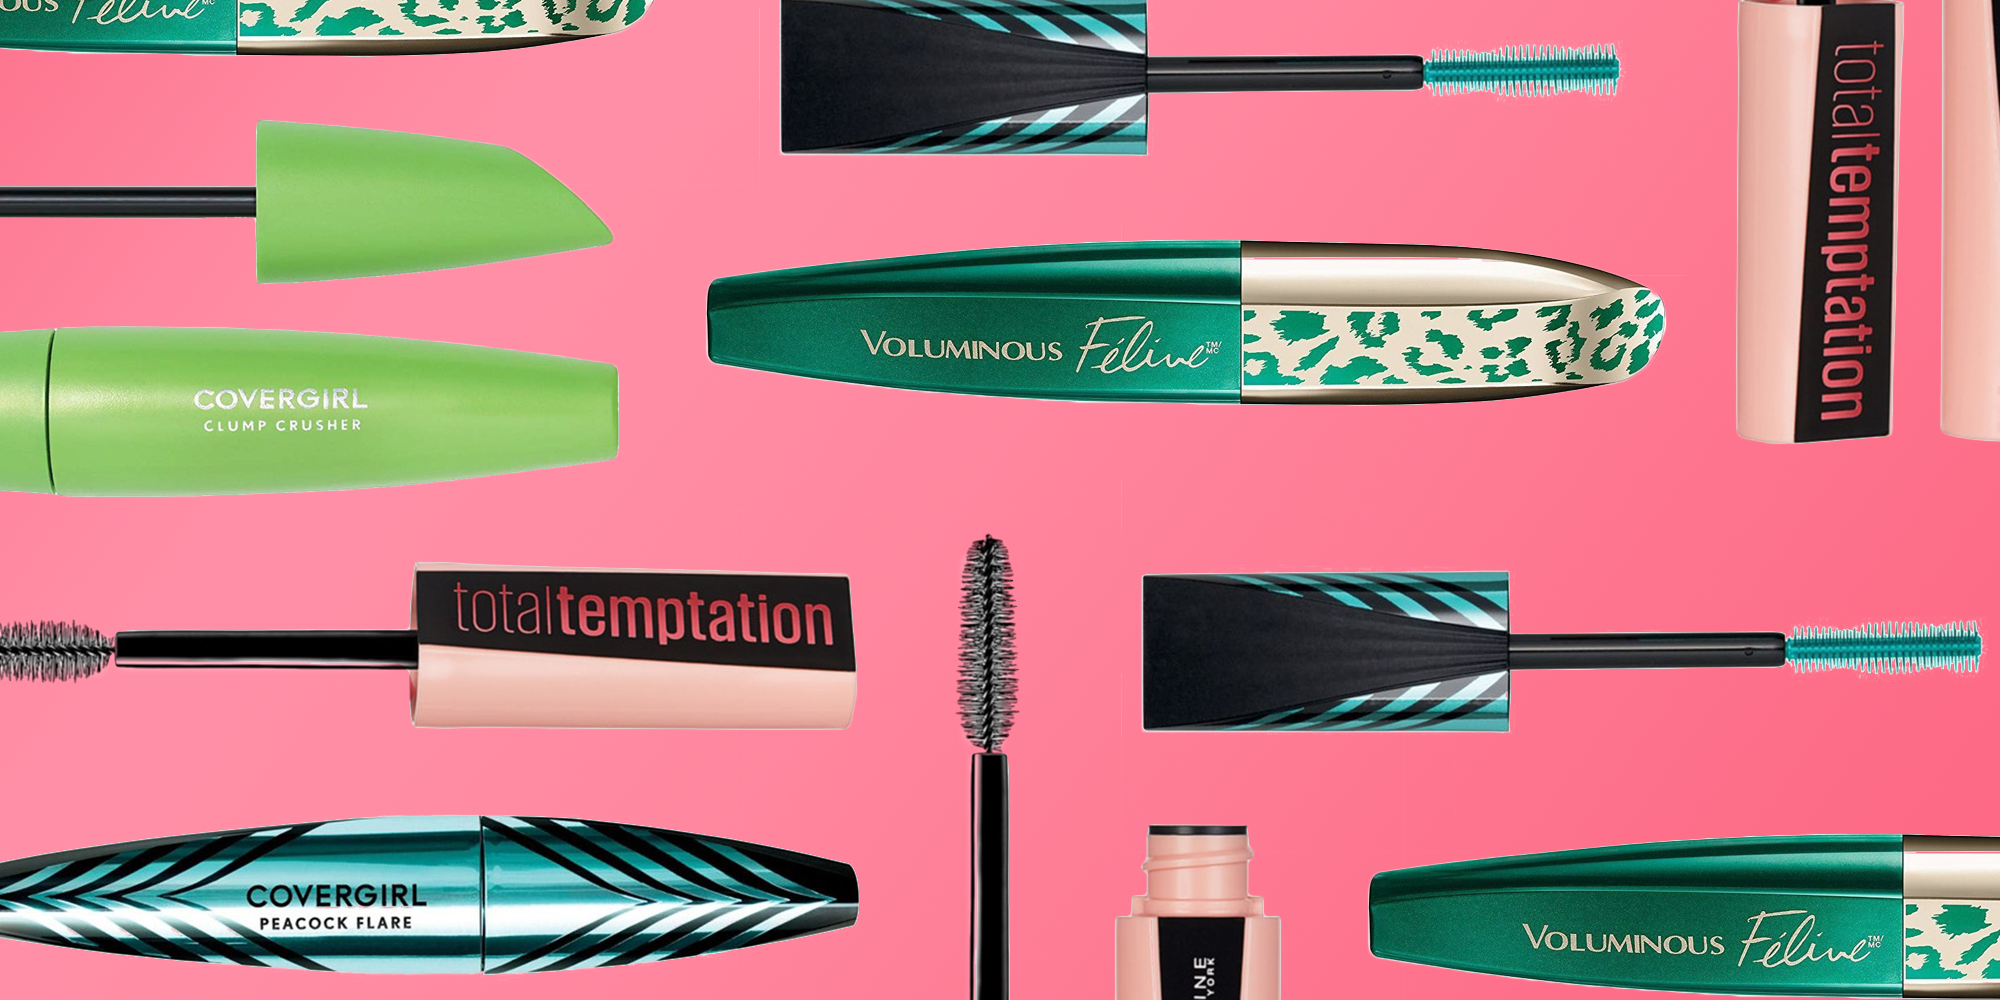 a2af08b8fd2 7 Best Drugstore Mascaras 2019 - Top Cheap Mascaras for Long, Dramatic  Lashes